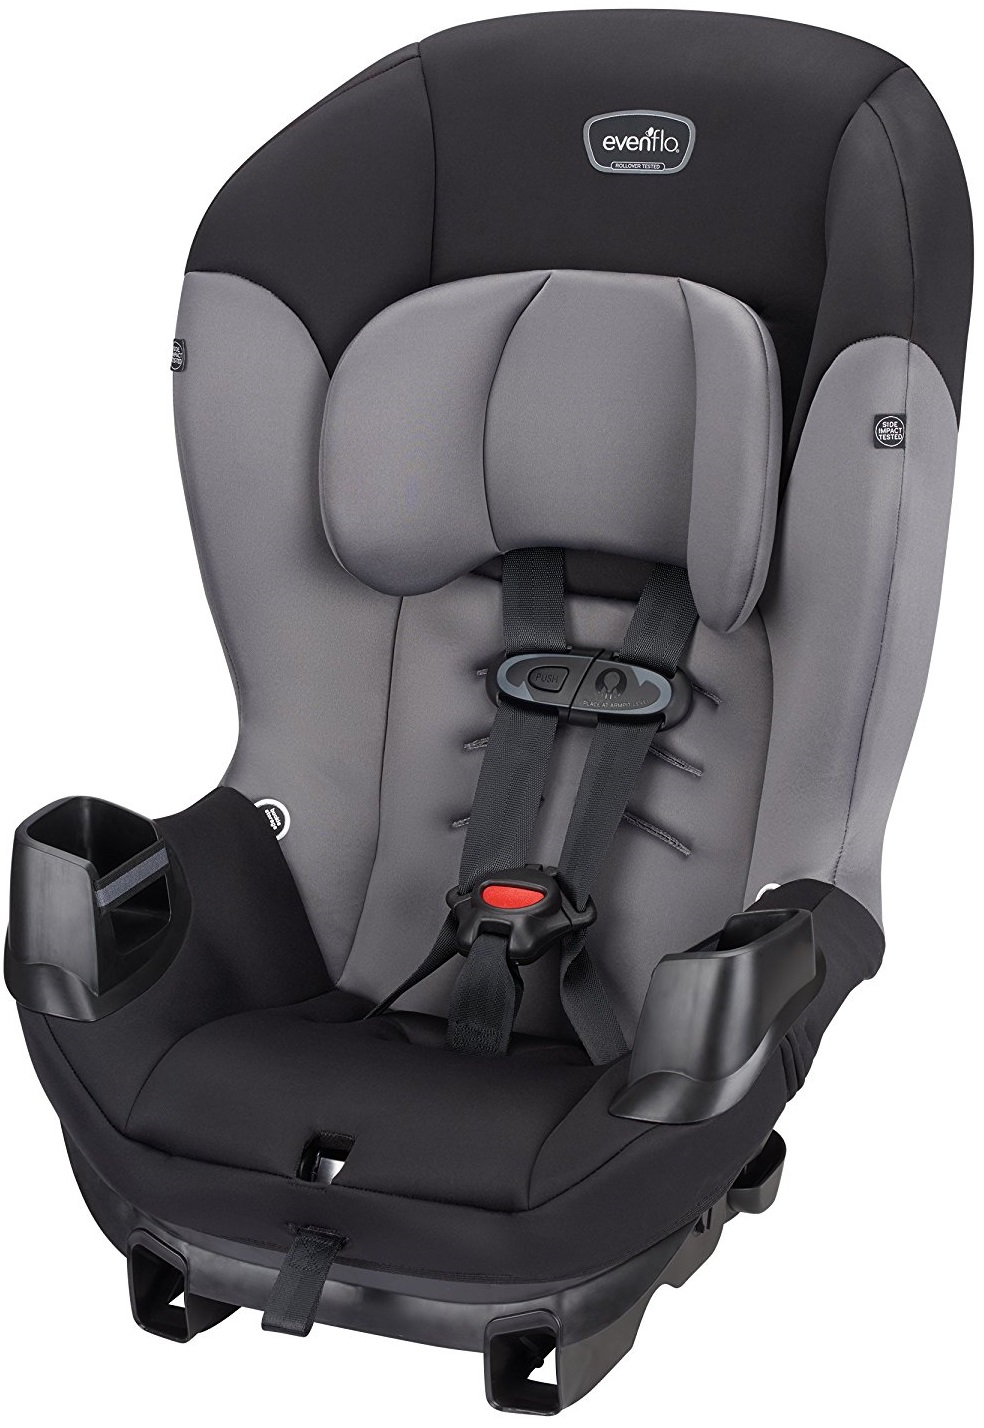 graco 4ever vs milestone comparison car seat differences. Black Bedroom Furniture Sets. Home Design Ideas